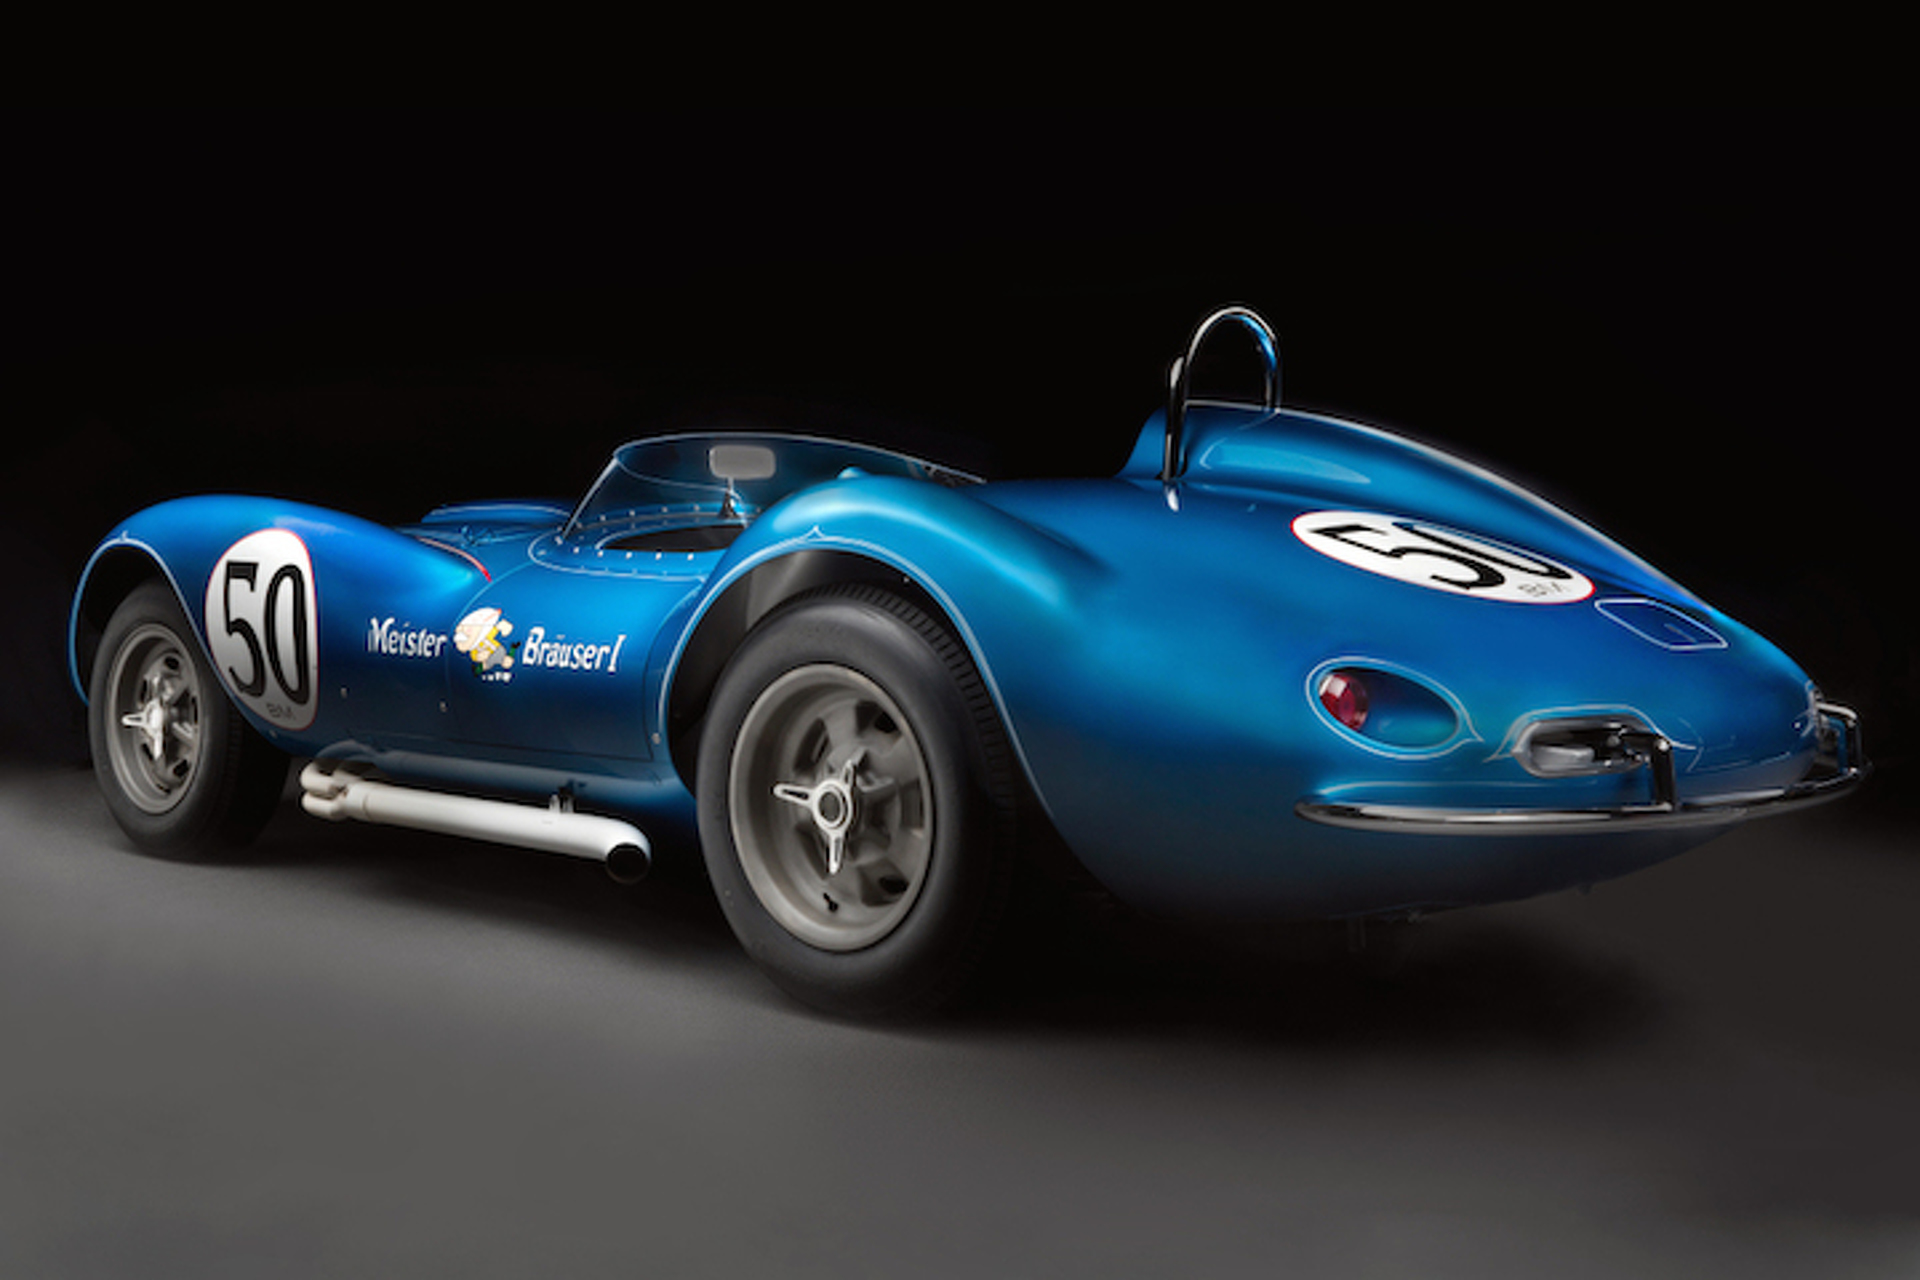 The Scarab: An American Racer with Plenty of Style